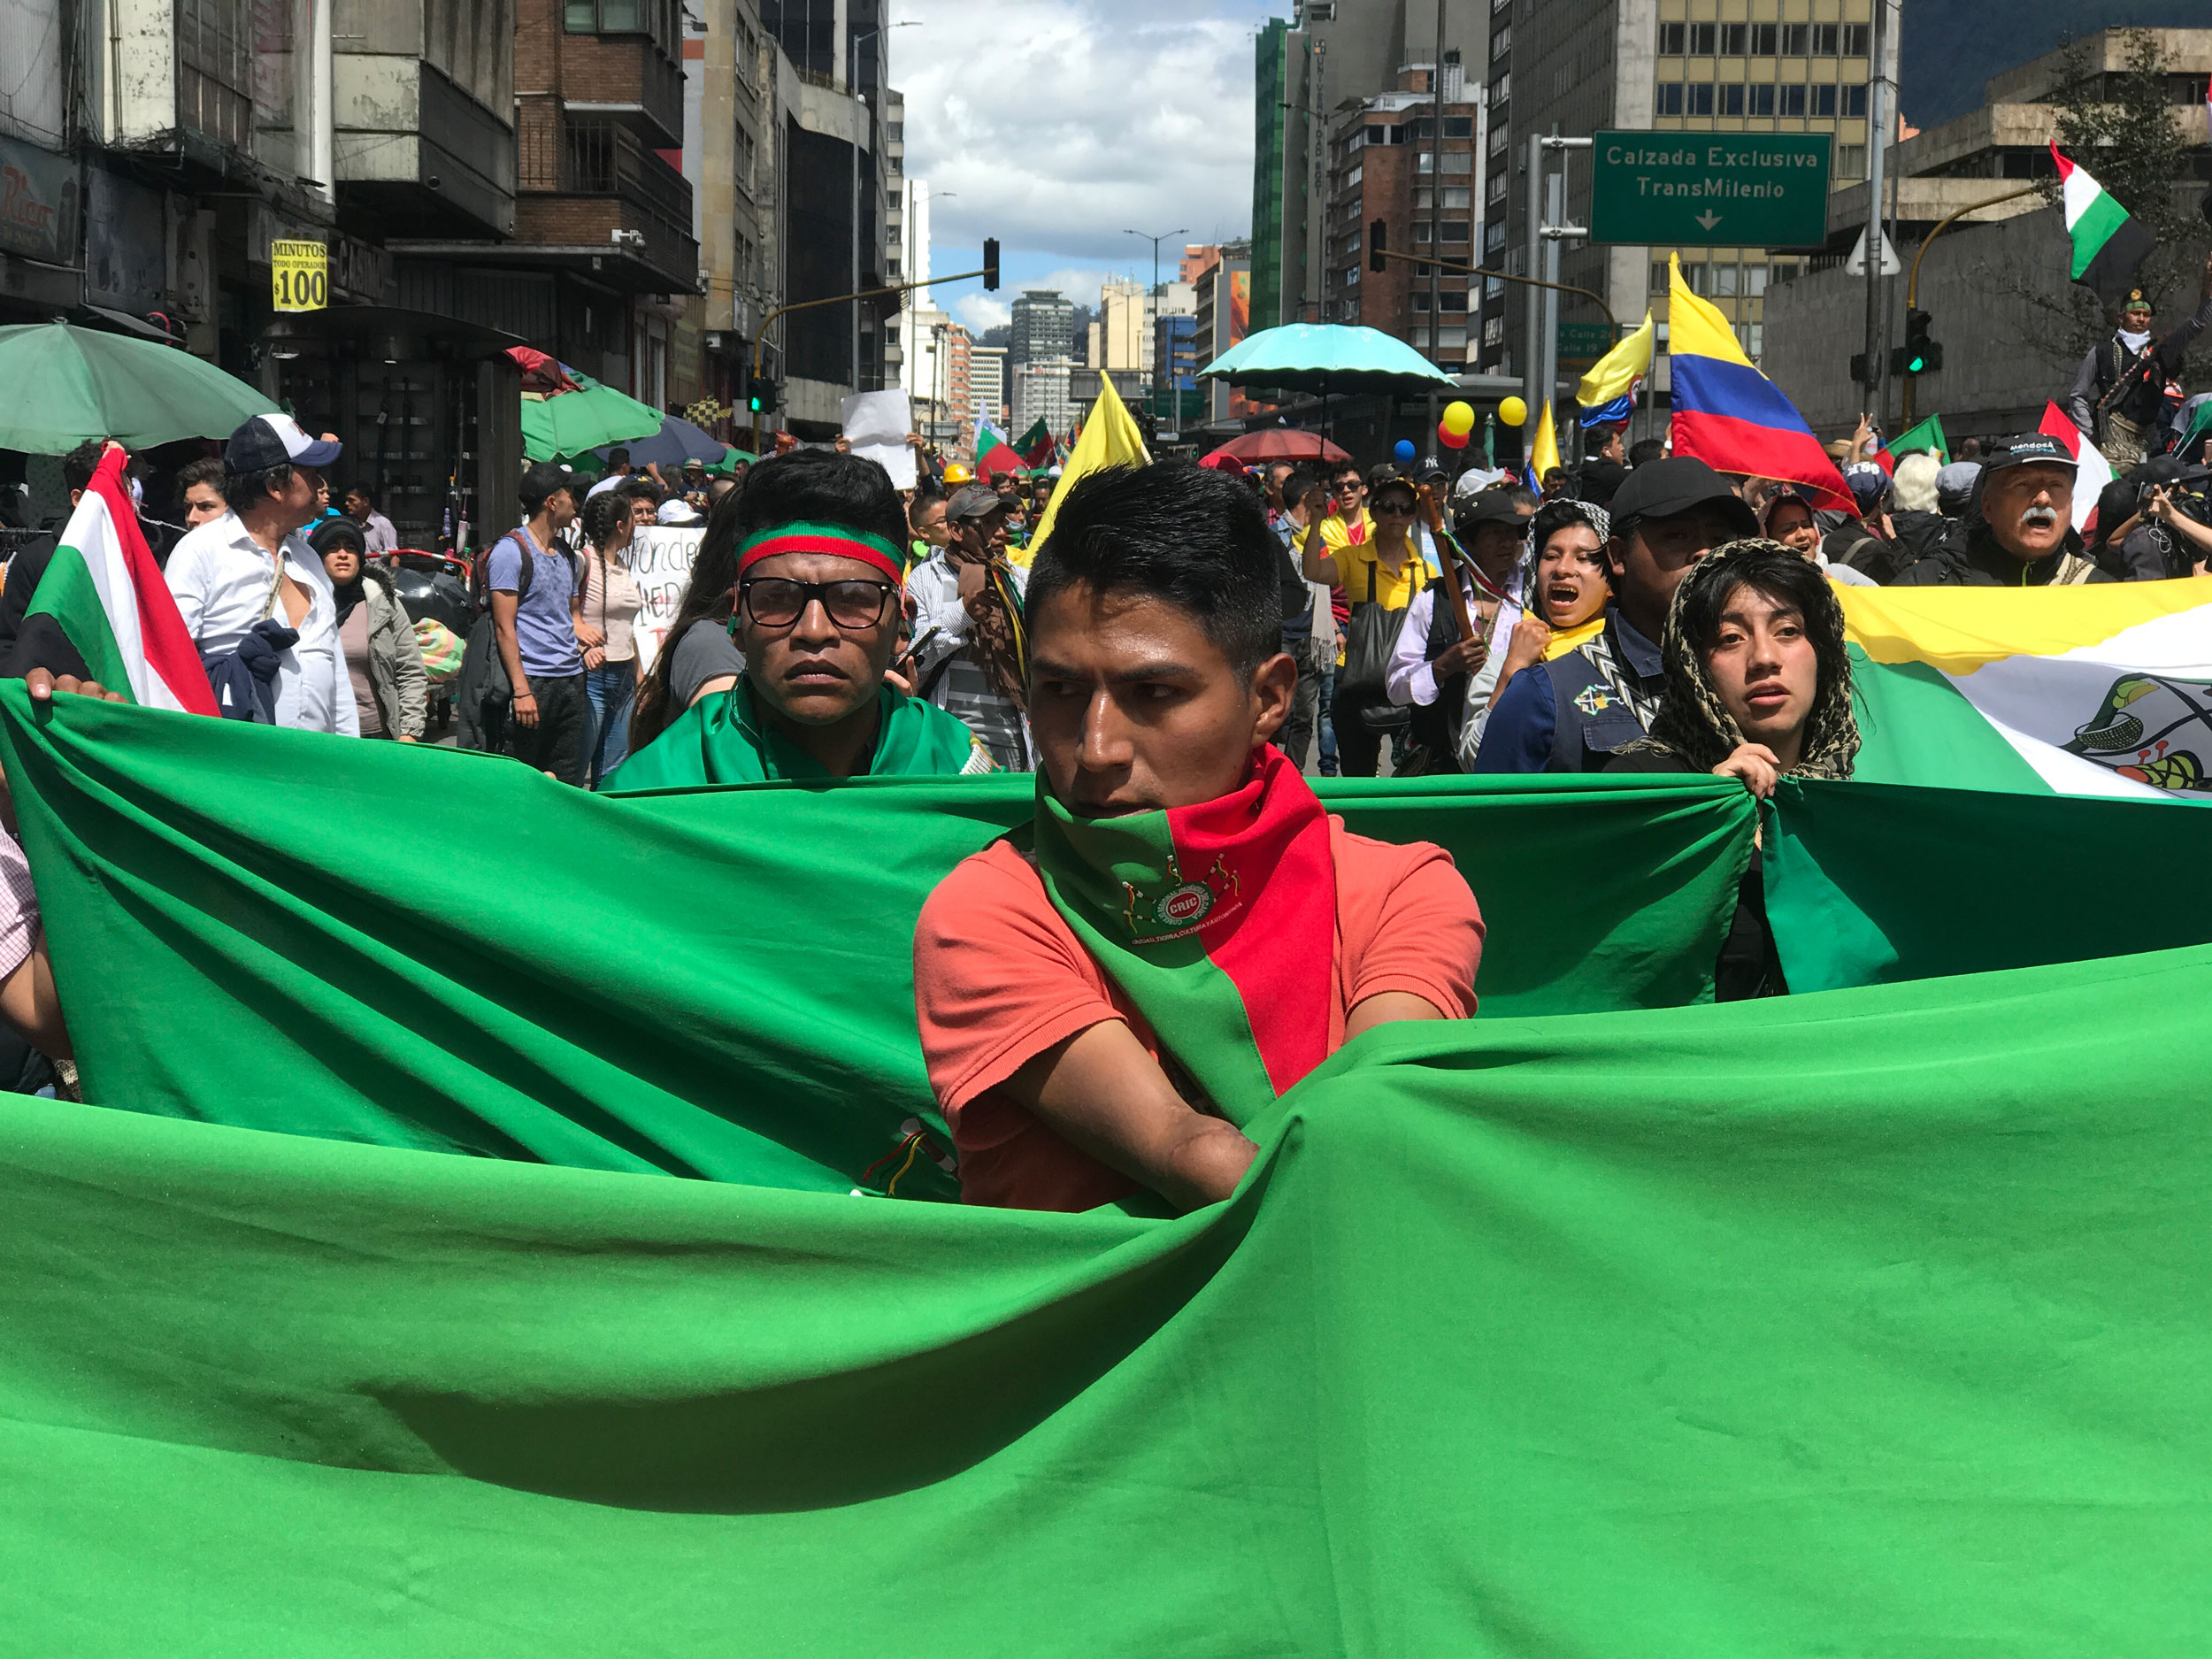 A man is shown wearing a green and red scarf and carrying a large green flag.